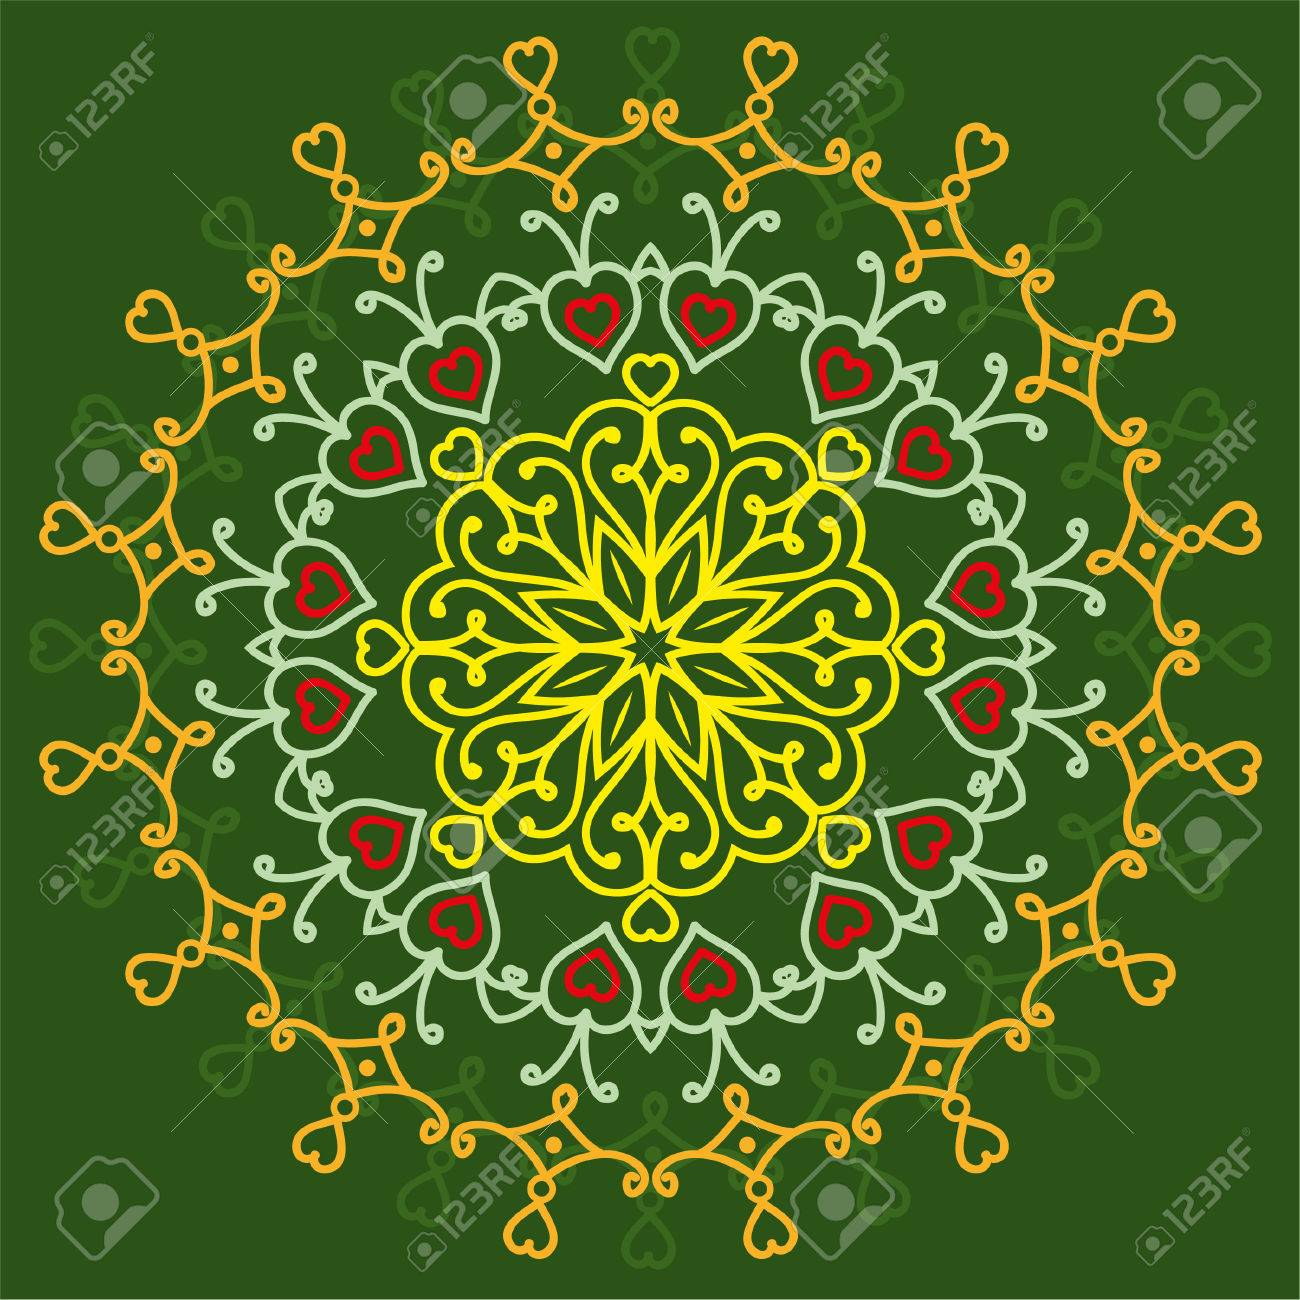 Mandala Of Love On A Green Background Ethnic Patterns Greetings